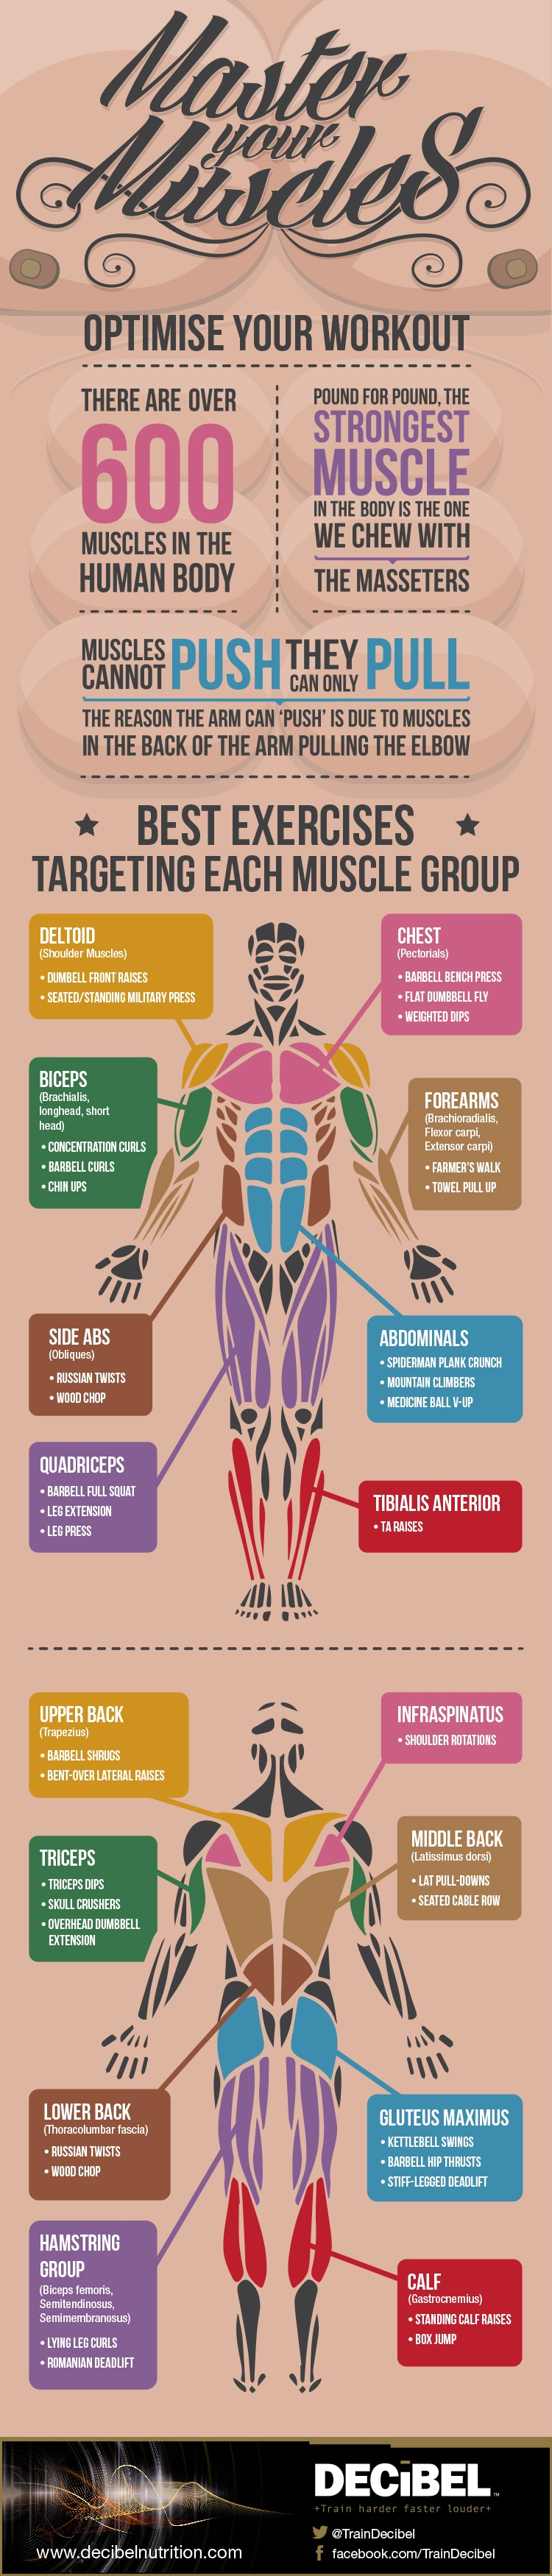 Optimize Your Workout To Tone All Muscles Infographic